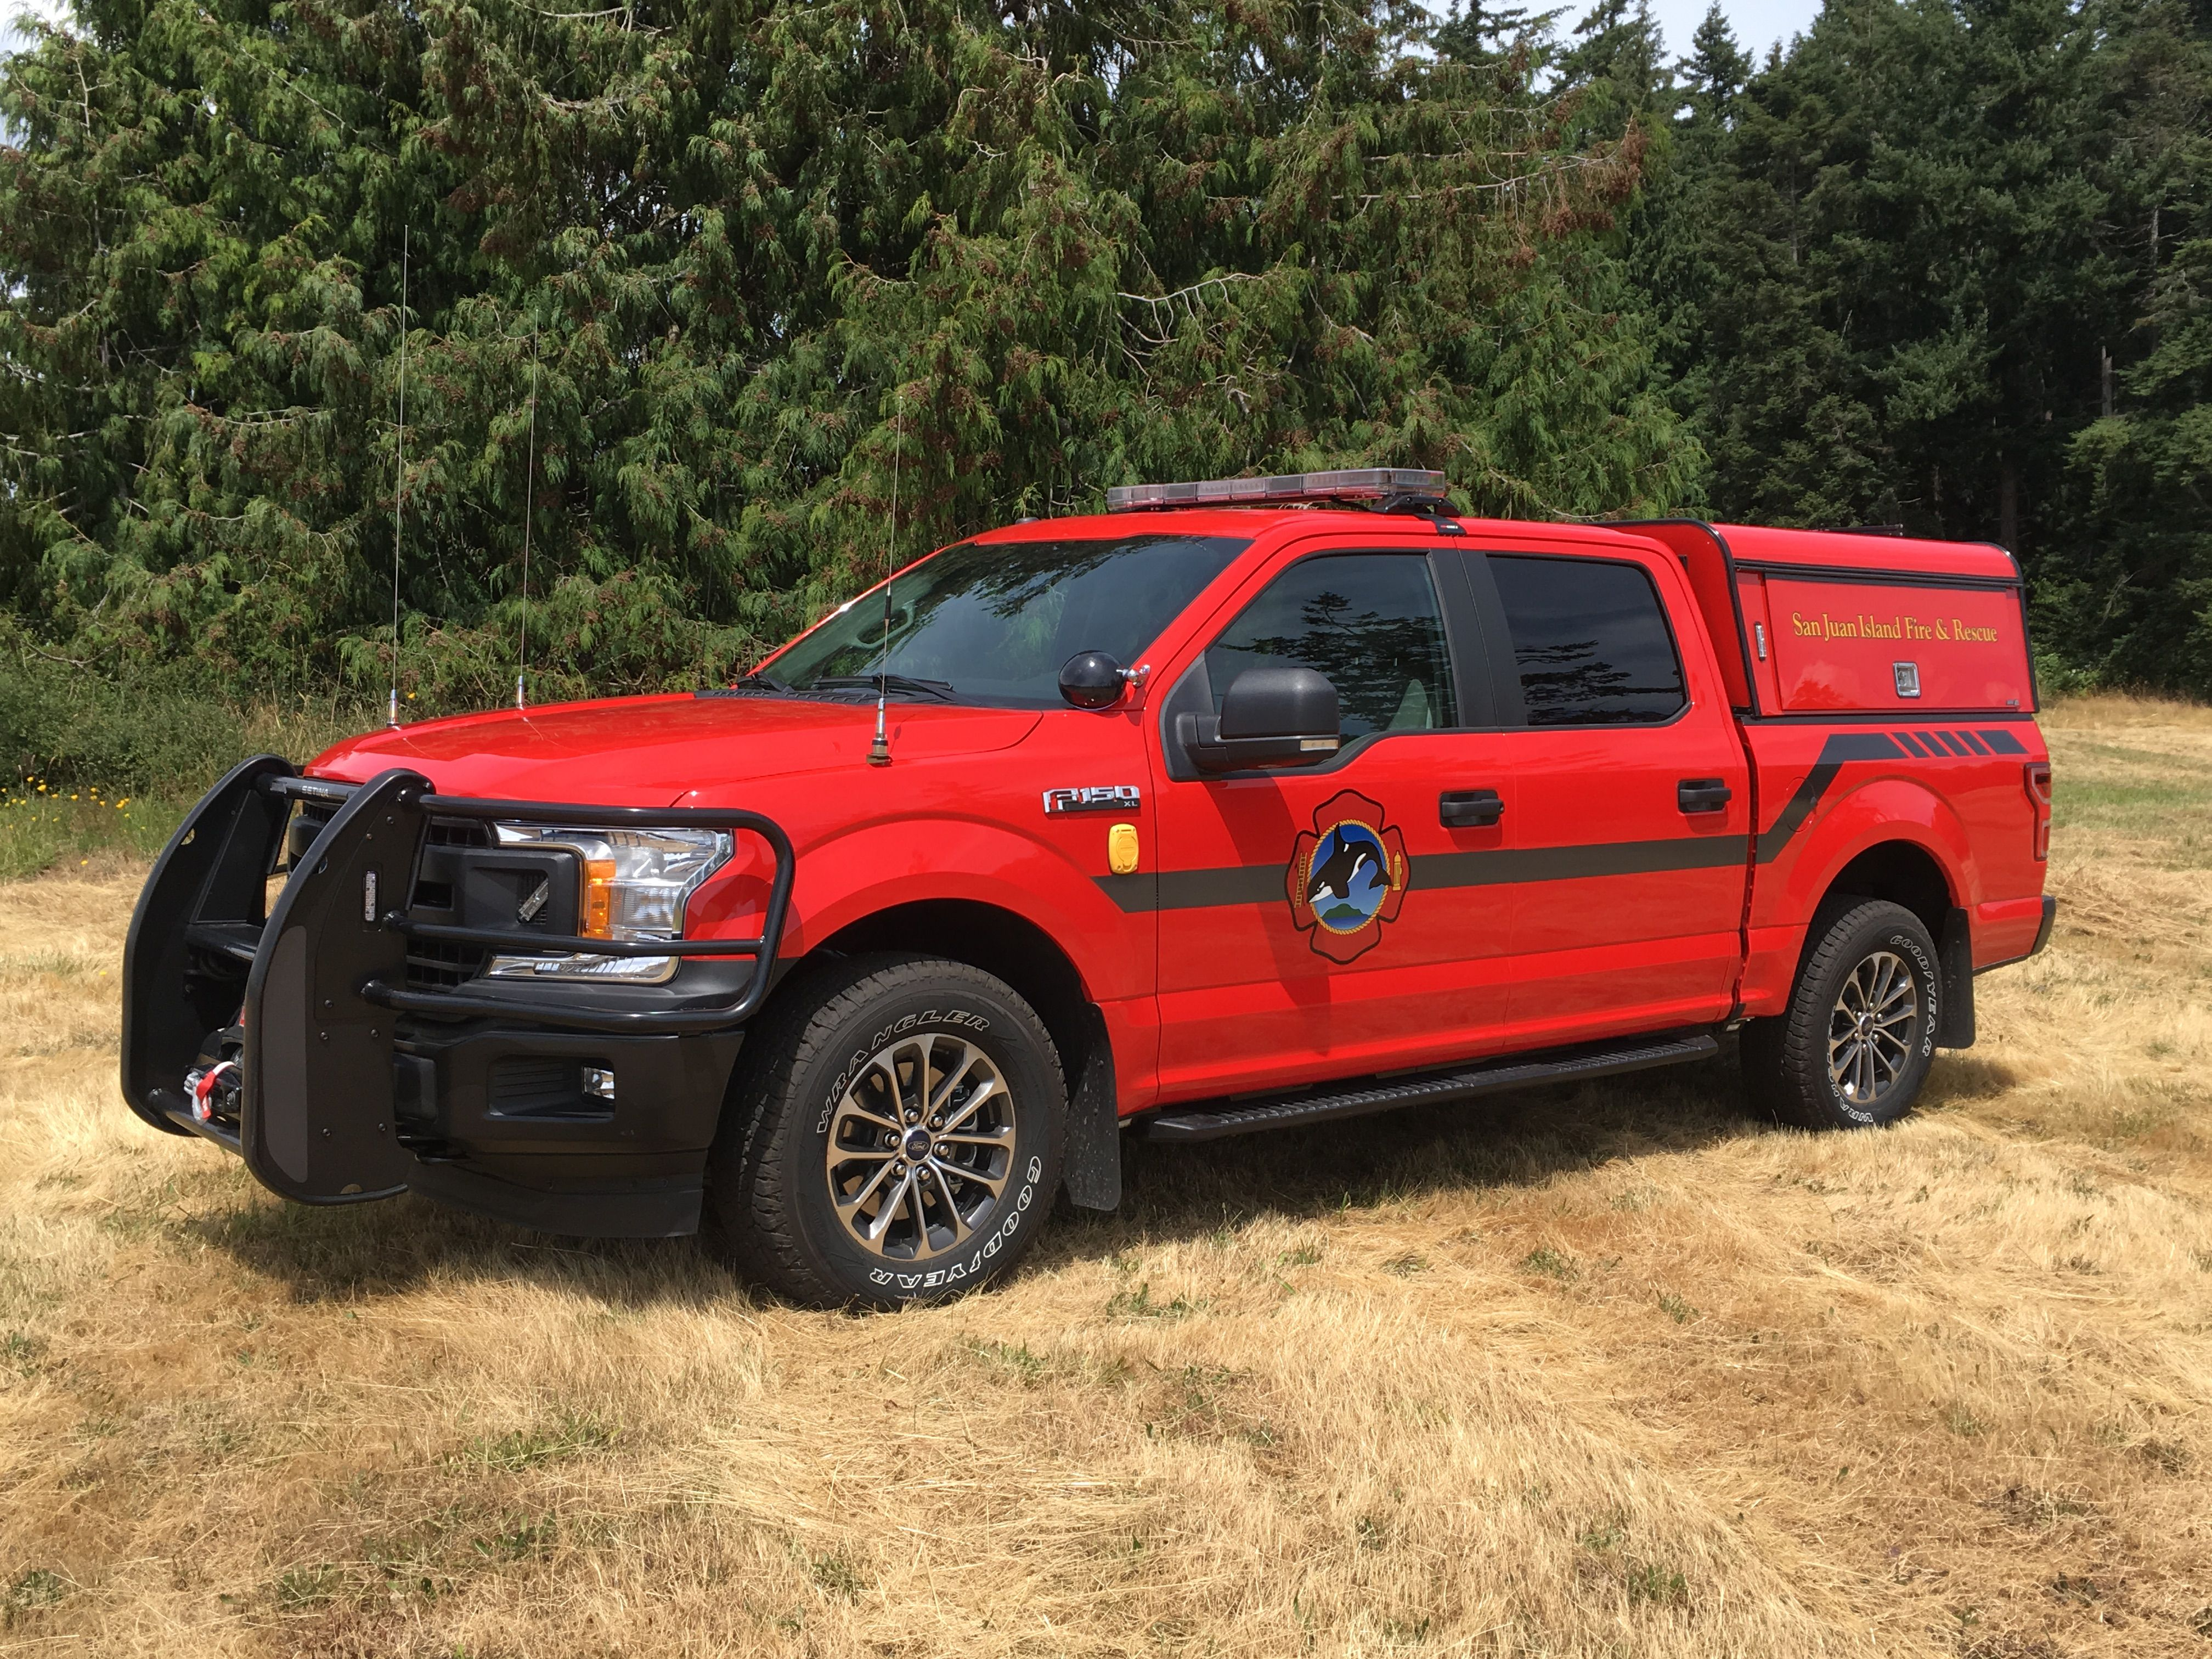 San Juan Island Fire Rescue Incident Command Vehicle 2019 Ford